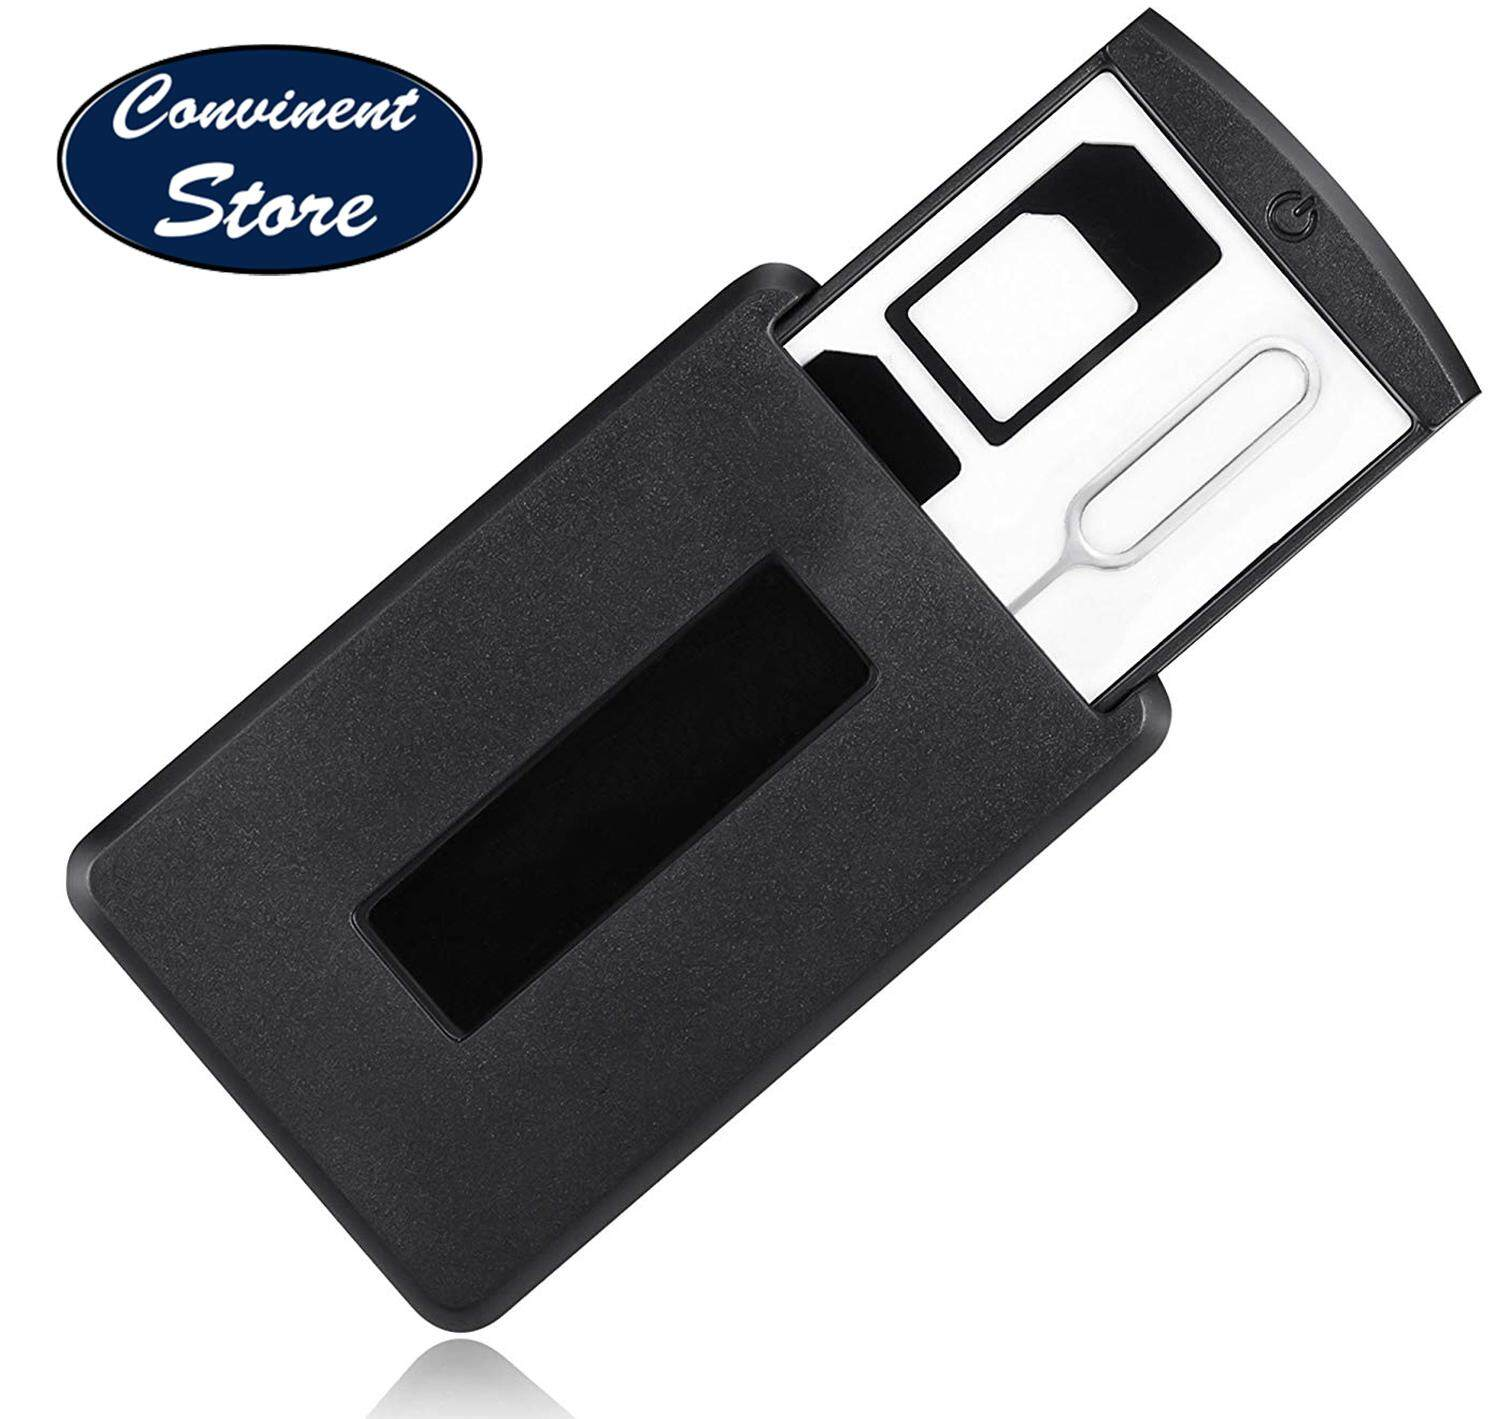 ✅peripro-402 11165 Mobile Safe Case - Store Safely Sim Card And Micro Sd Card - Includes Micro Sim Adapter, Nano Sim Adapter, And Remove Pin For Iphone, Nexus And Galaxy By Convinent Store.